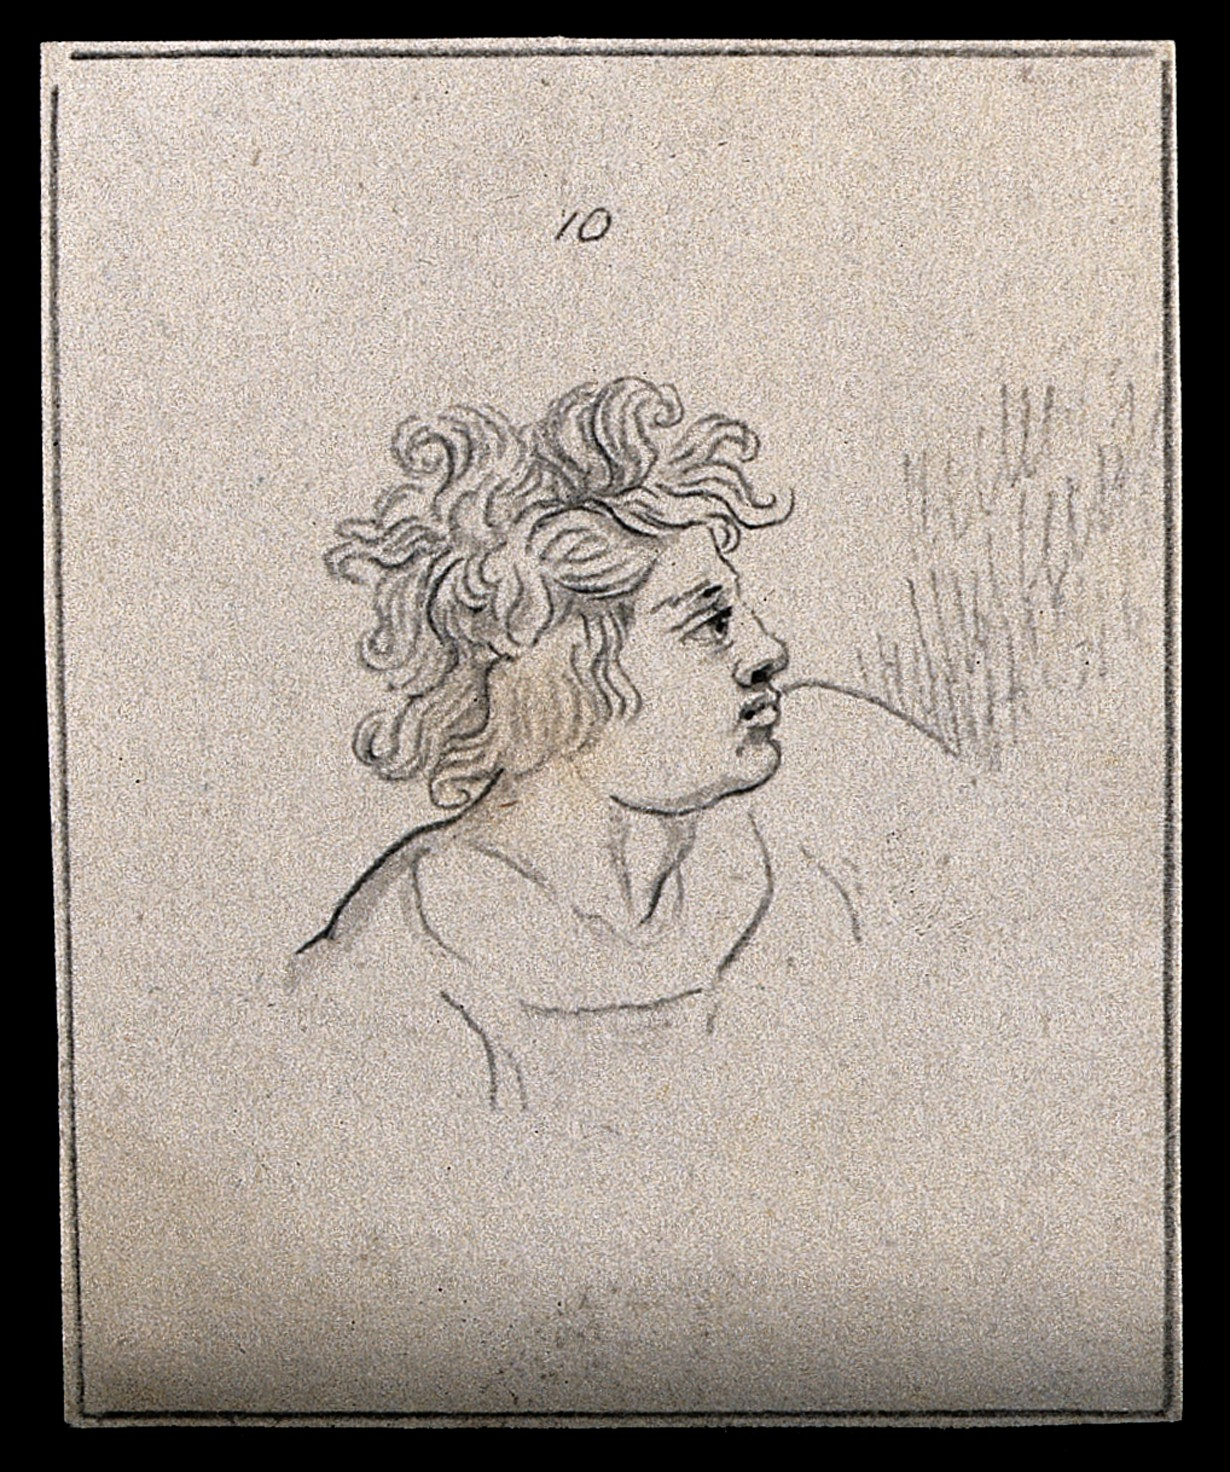 pencil drawing of a man with tousled hair